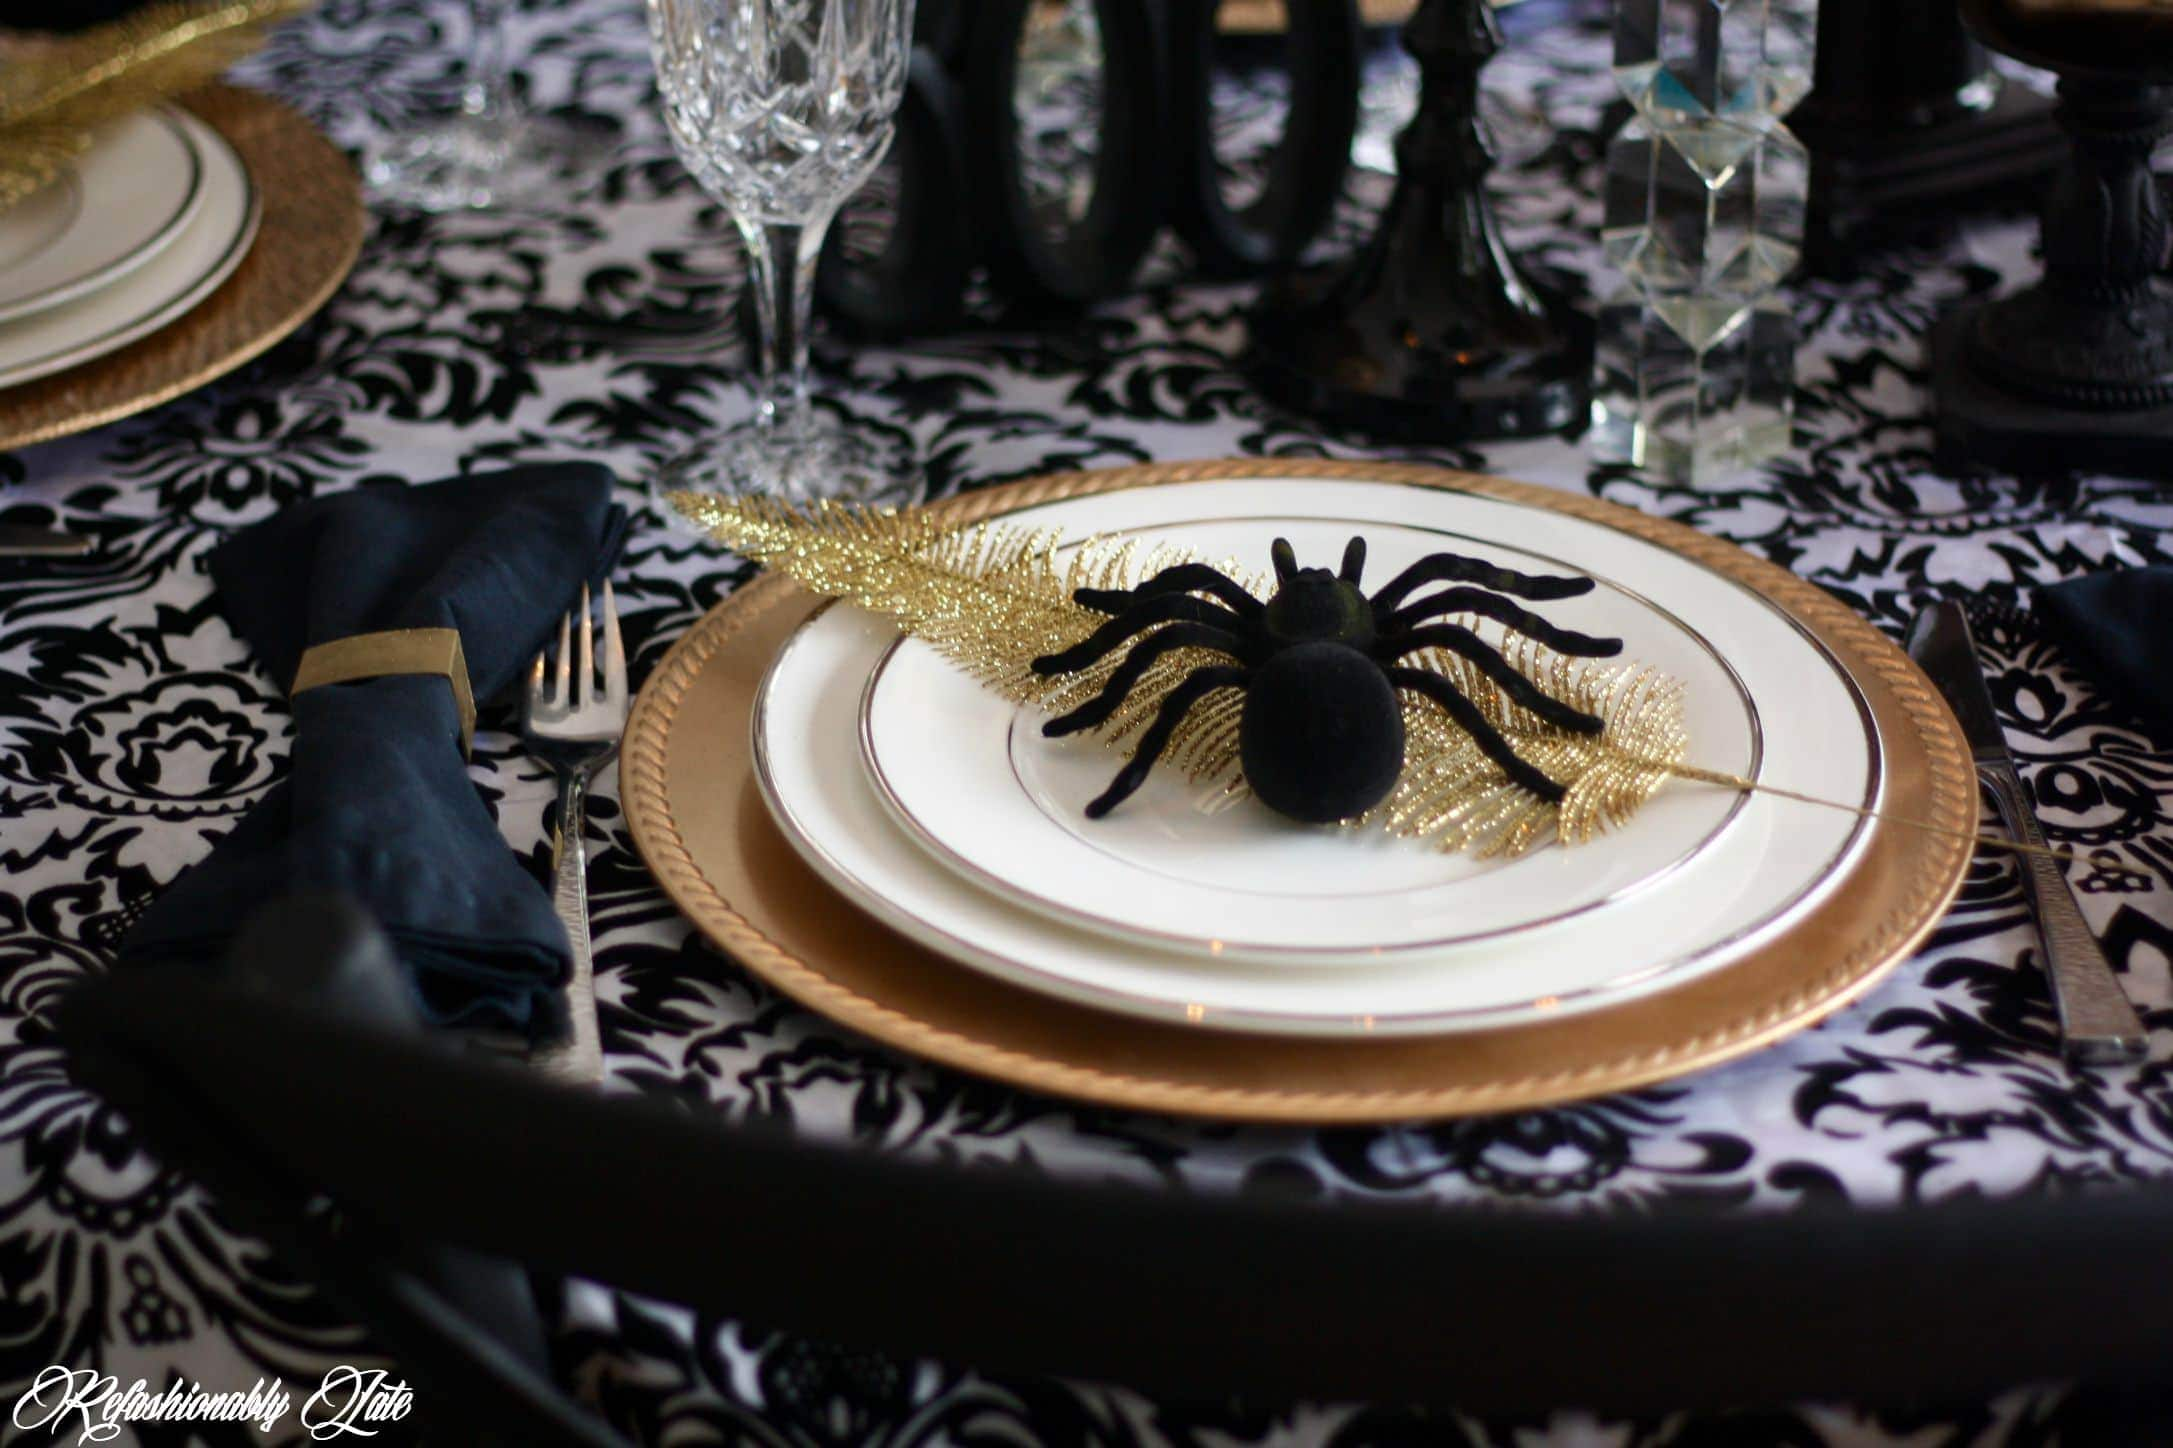 Halloween Dinner Table Setting.A Scary Yet Stylish Halloween Dinner Party Refashionably Late